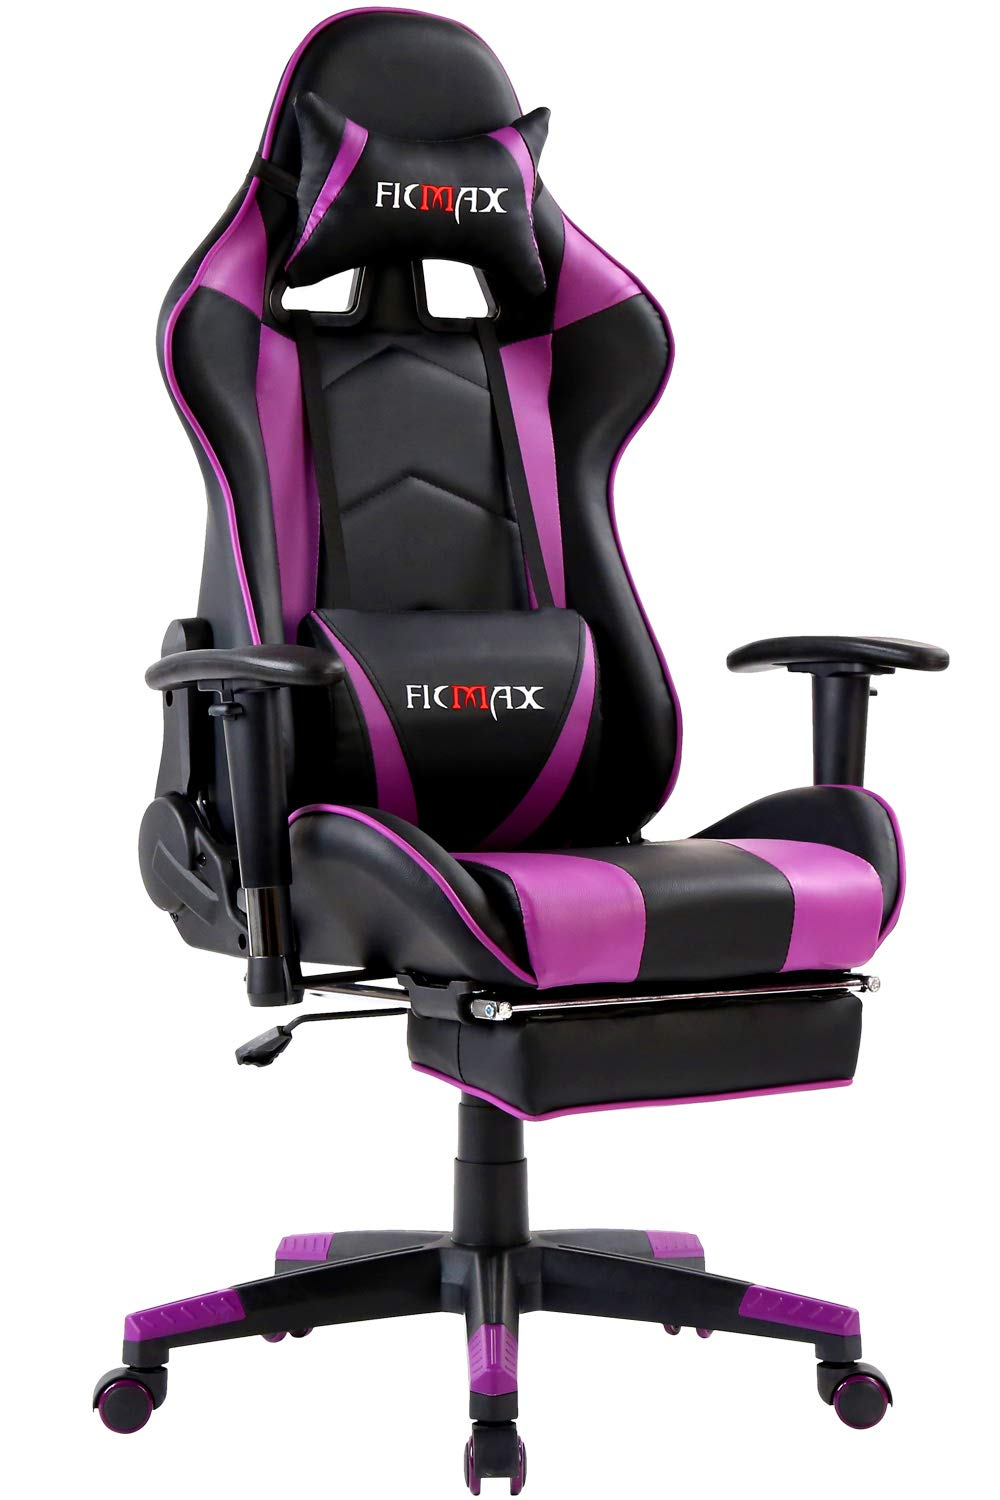 Ficmax Massage Gaming Chair Ergonomic Computer Gaming Chair with Footrest Reclining Computer Chair High Back Gaming Desk Chair Racing Style Home Office Chair With Head and Lumbar Support(Black/Purple) by Ficmax